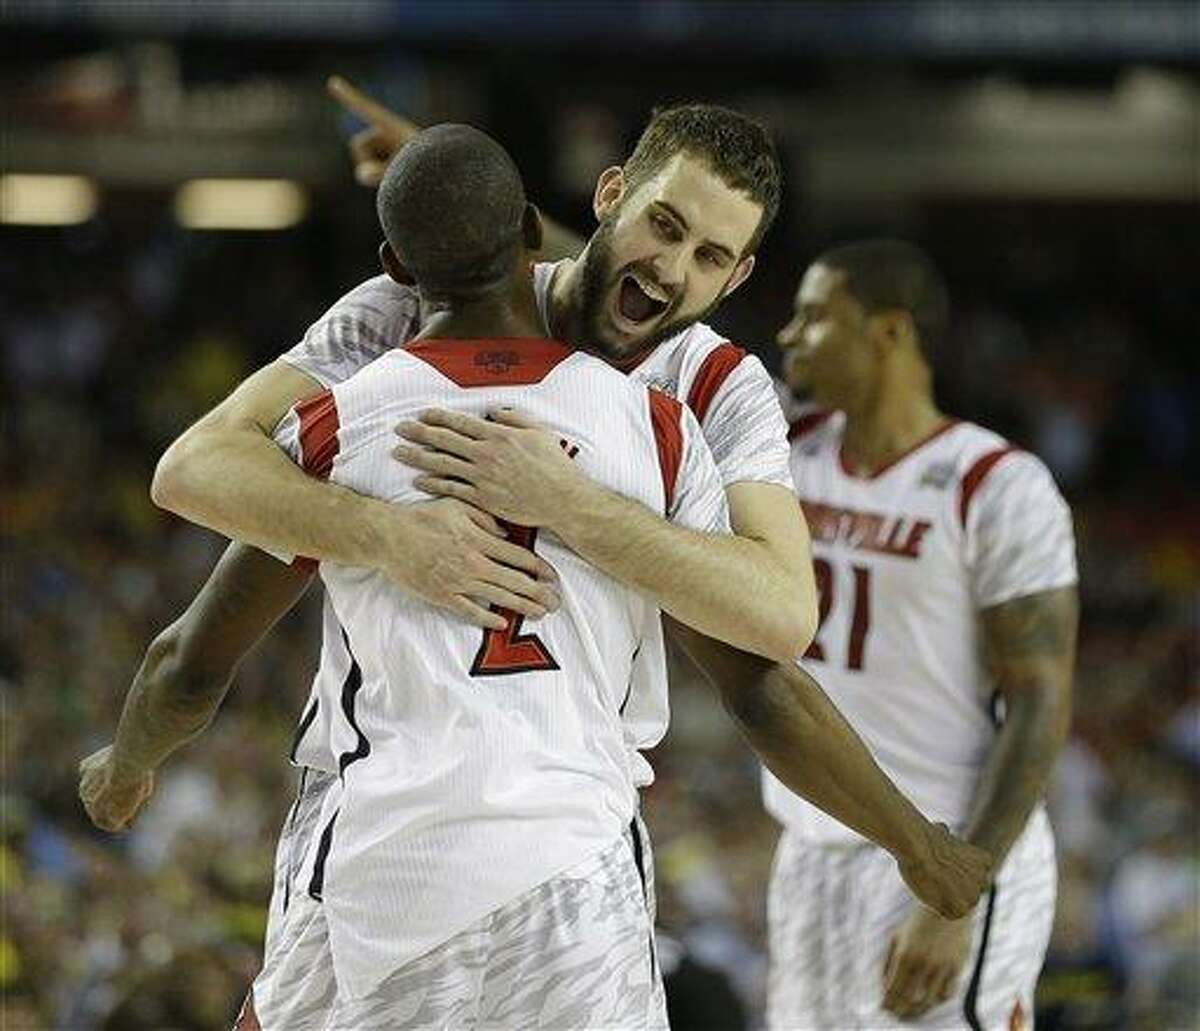 Louisville guard/forward Luke Hancock (11) embraces Louisville guard Russ Smith (2) after defeating Michigan after the second half of the NCAA Final Four tournament college basketball championship game Monday, April 8, 2013, in Atlanta. Louisville won 82-76. (AP Photo/David J. Phillip)